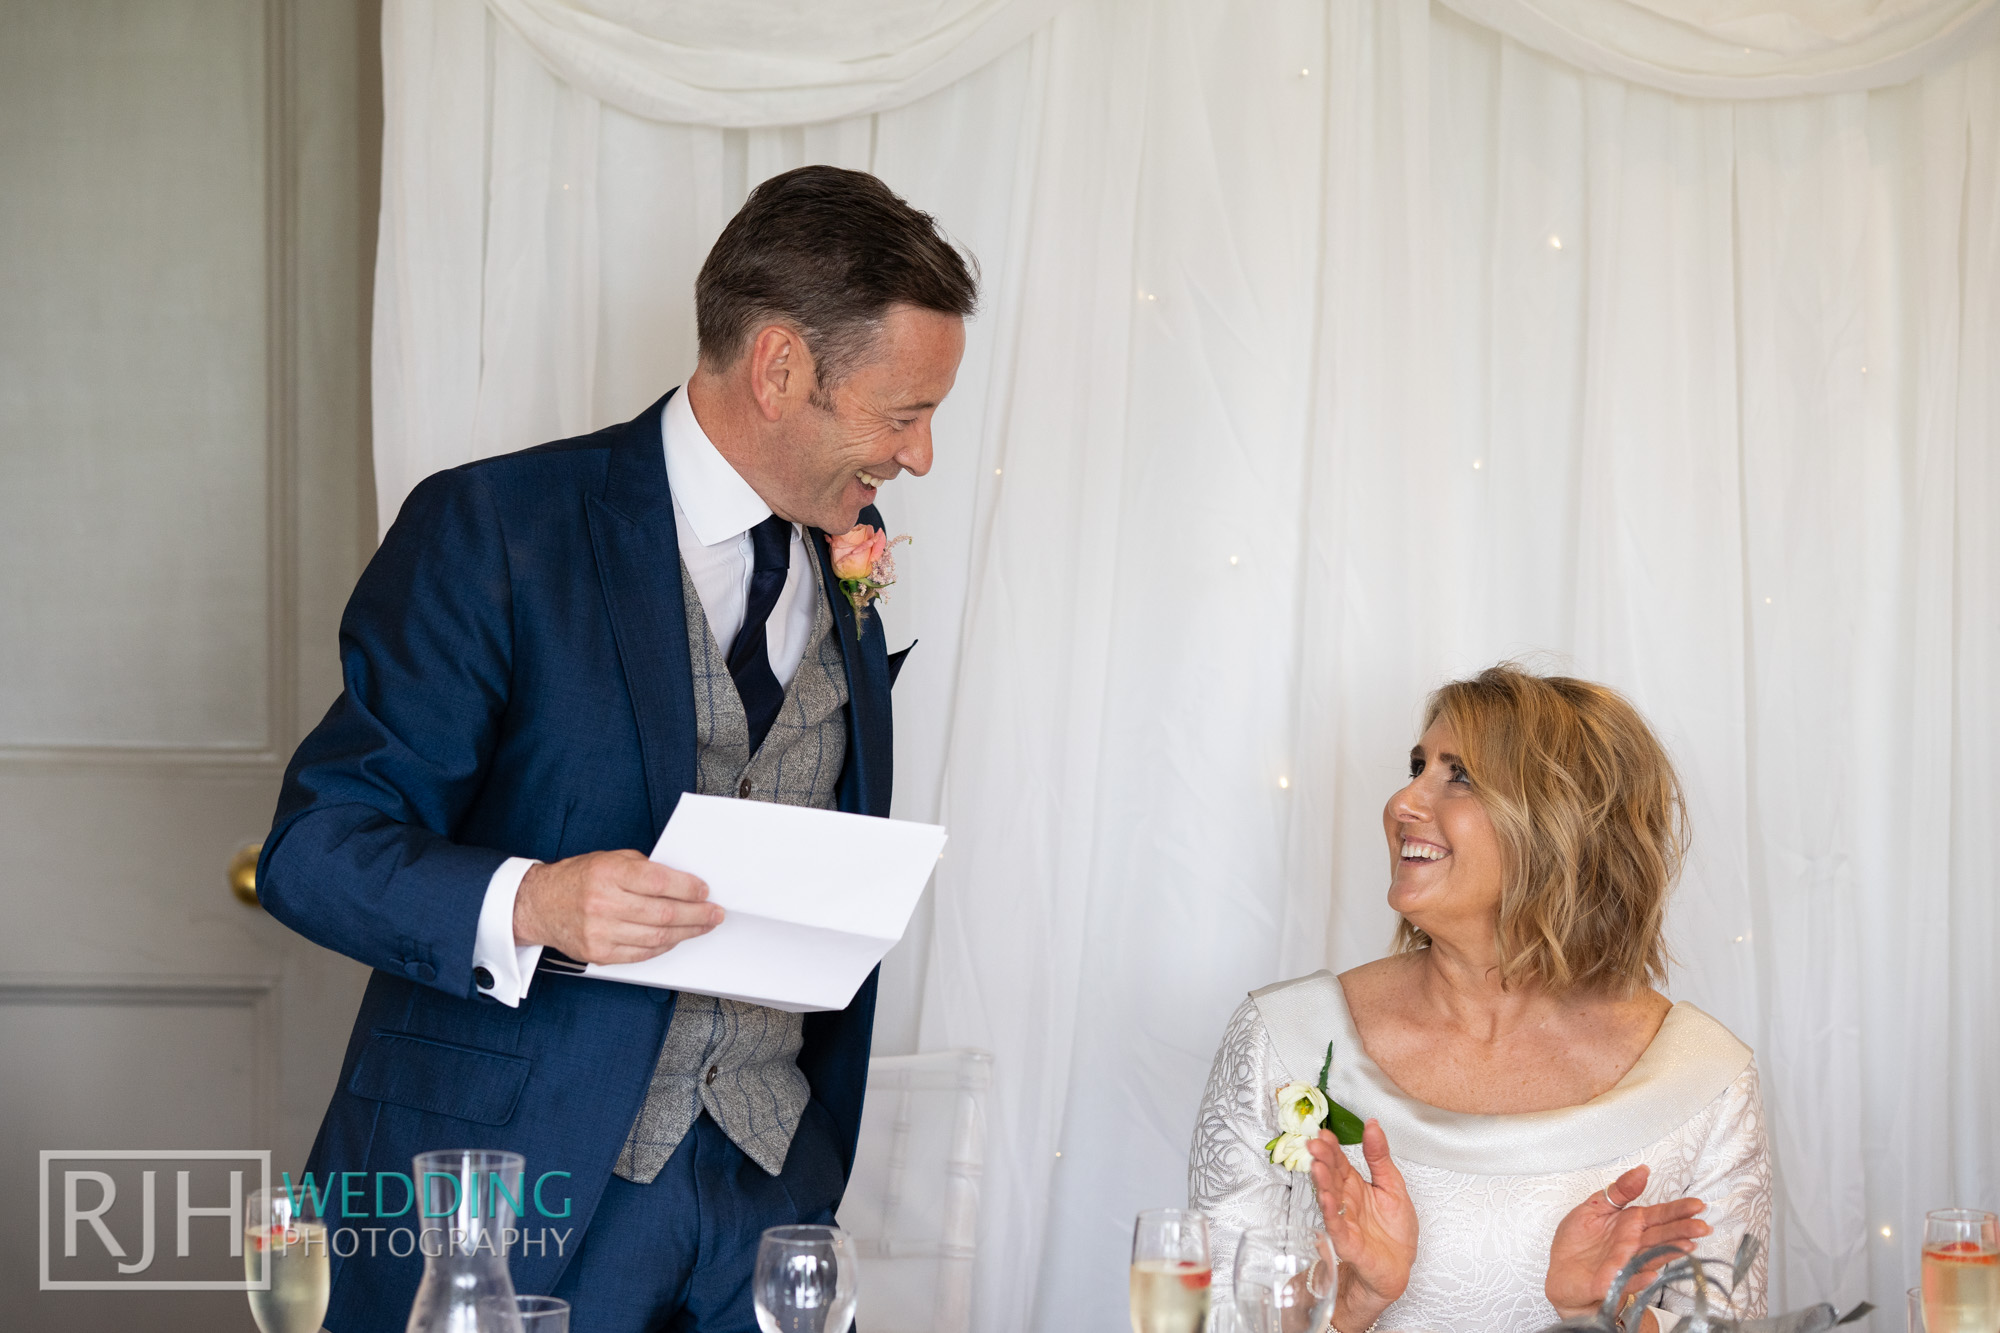 Whirlowbrook Hall Wedding Photography_Jack & Lydia_051_DS205502.jpg